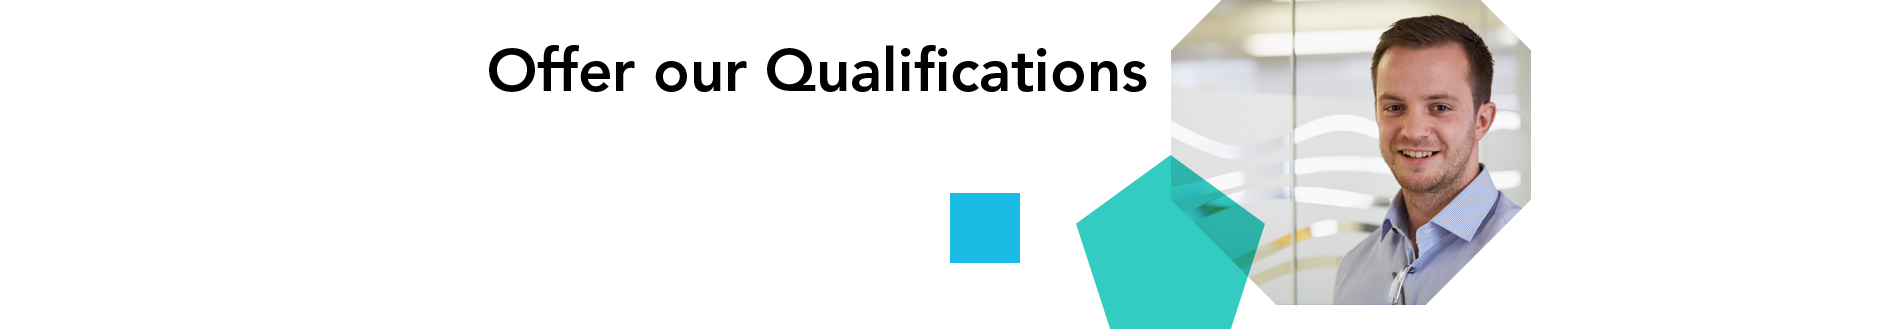 Offer our qualifications banner